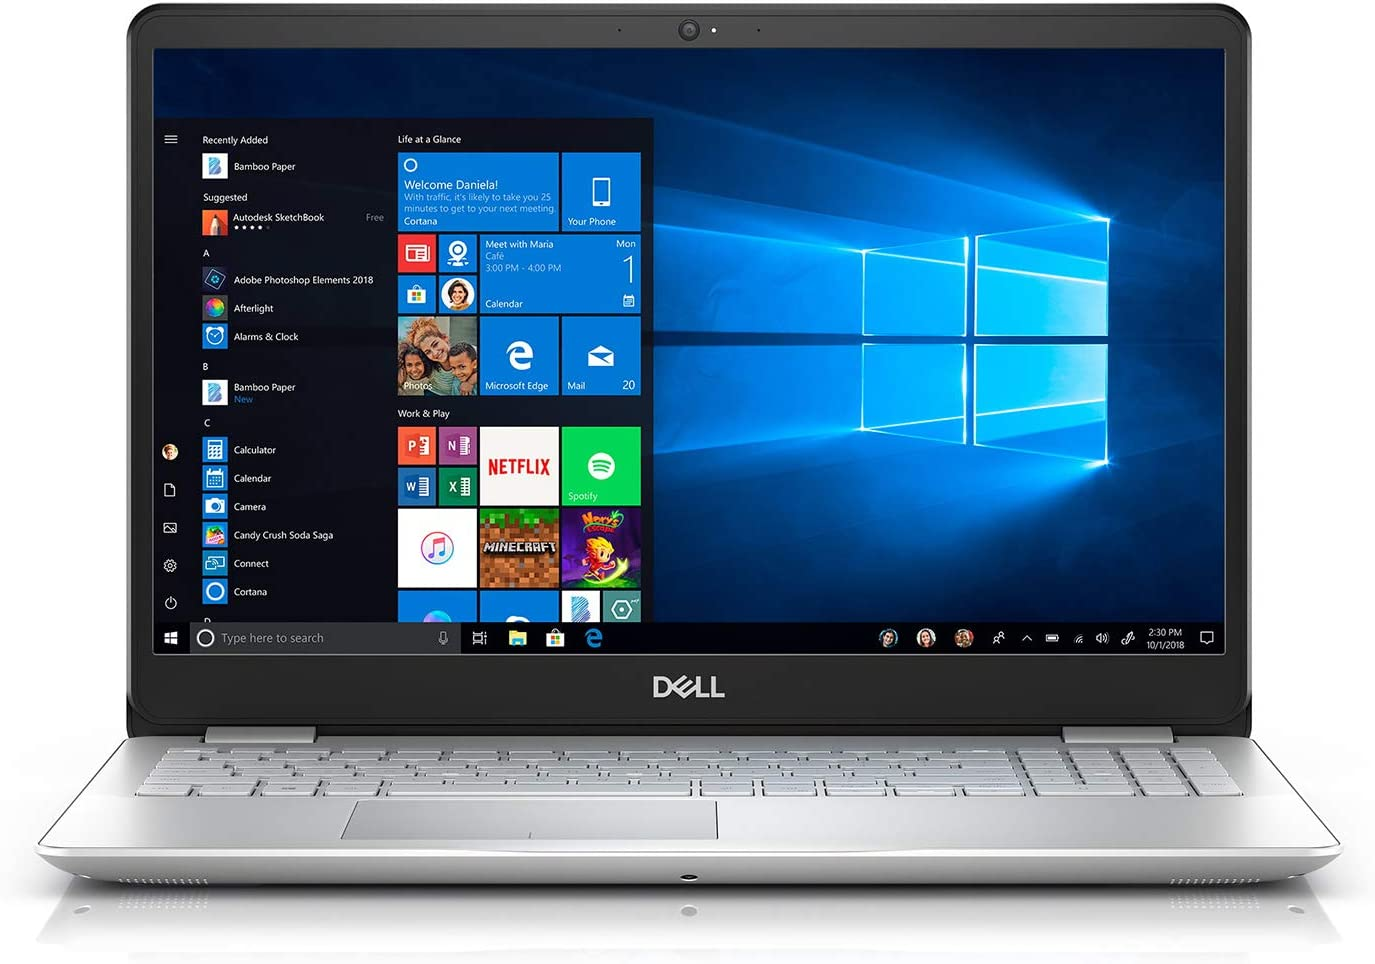 Dell Inspiron 15 5584 Laptop, 15.6 Screen, Intel Core i5, 8GB Memory, 256GB Solid State Drive, Windows 10 Home, I5584-5868SLV-PU